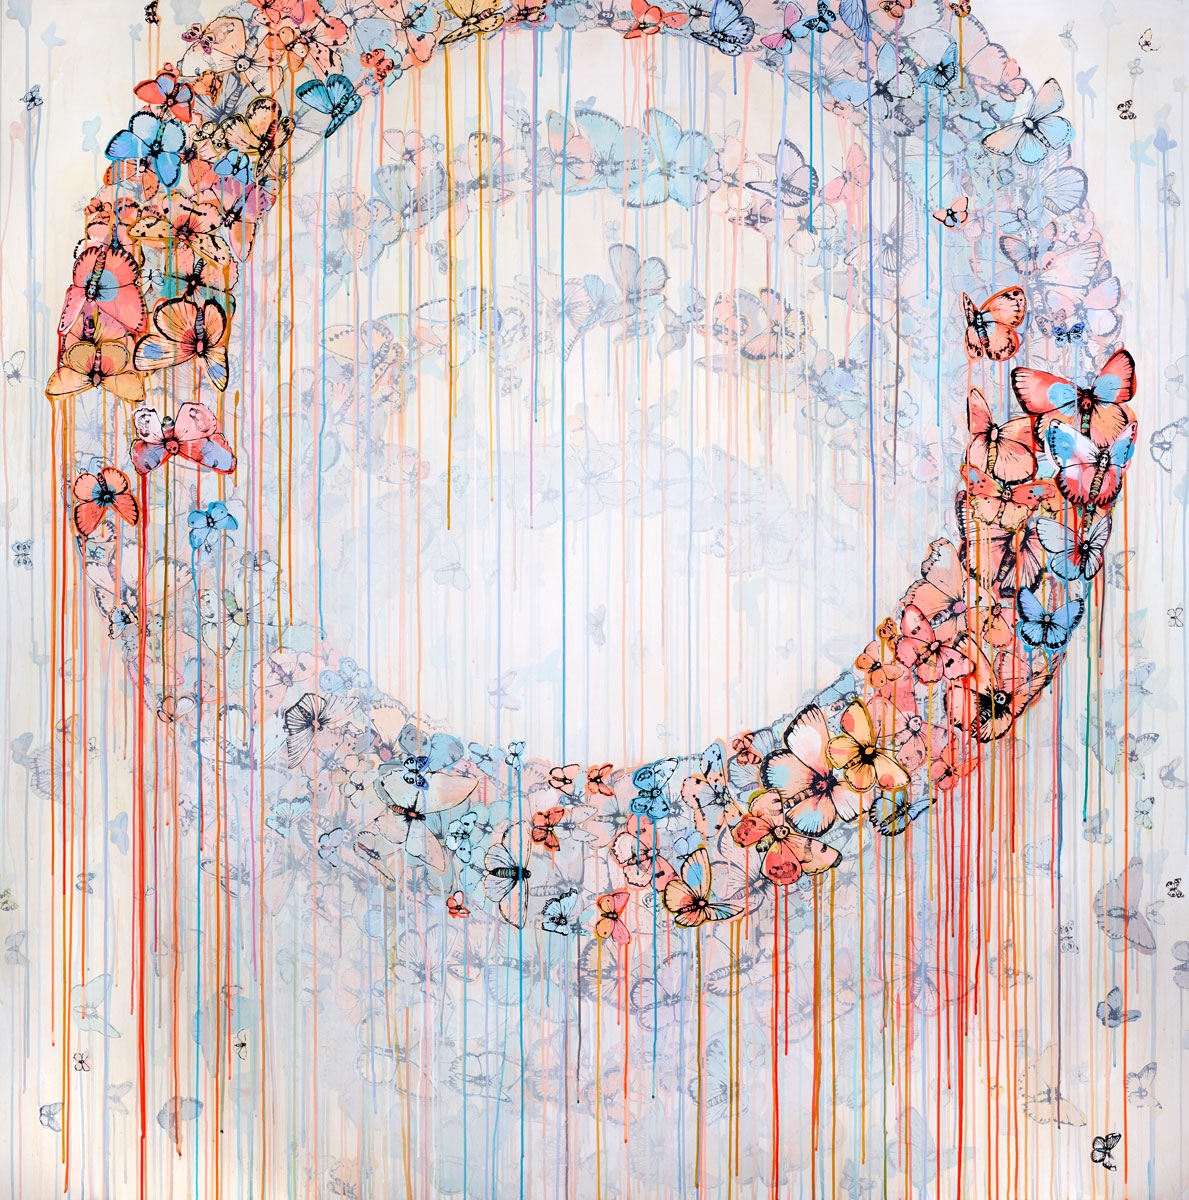 RING-CYCLE-The-Dutch-Giant-2013-Acrylic-Ink-and-Velum-on-Canvas-70-x-70-inches.jpg